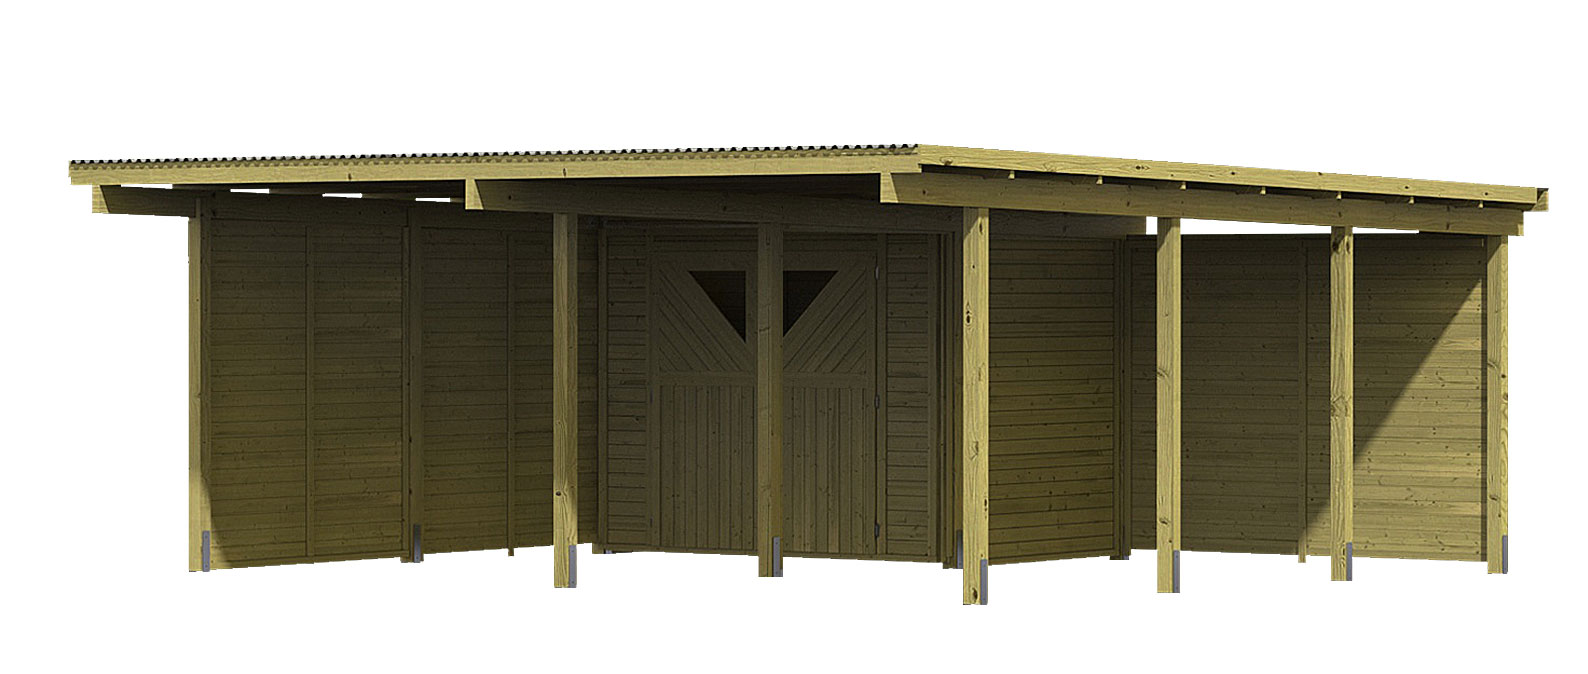 karibu eco carport mit abstellraum 1 kdi 563x676cm wand. Black Bedroom Furniture Sets. Home Design Ideas